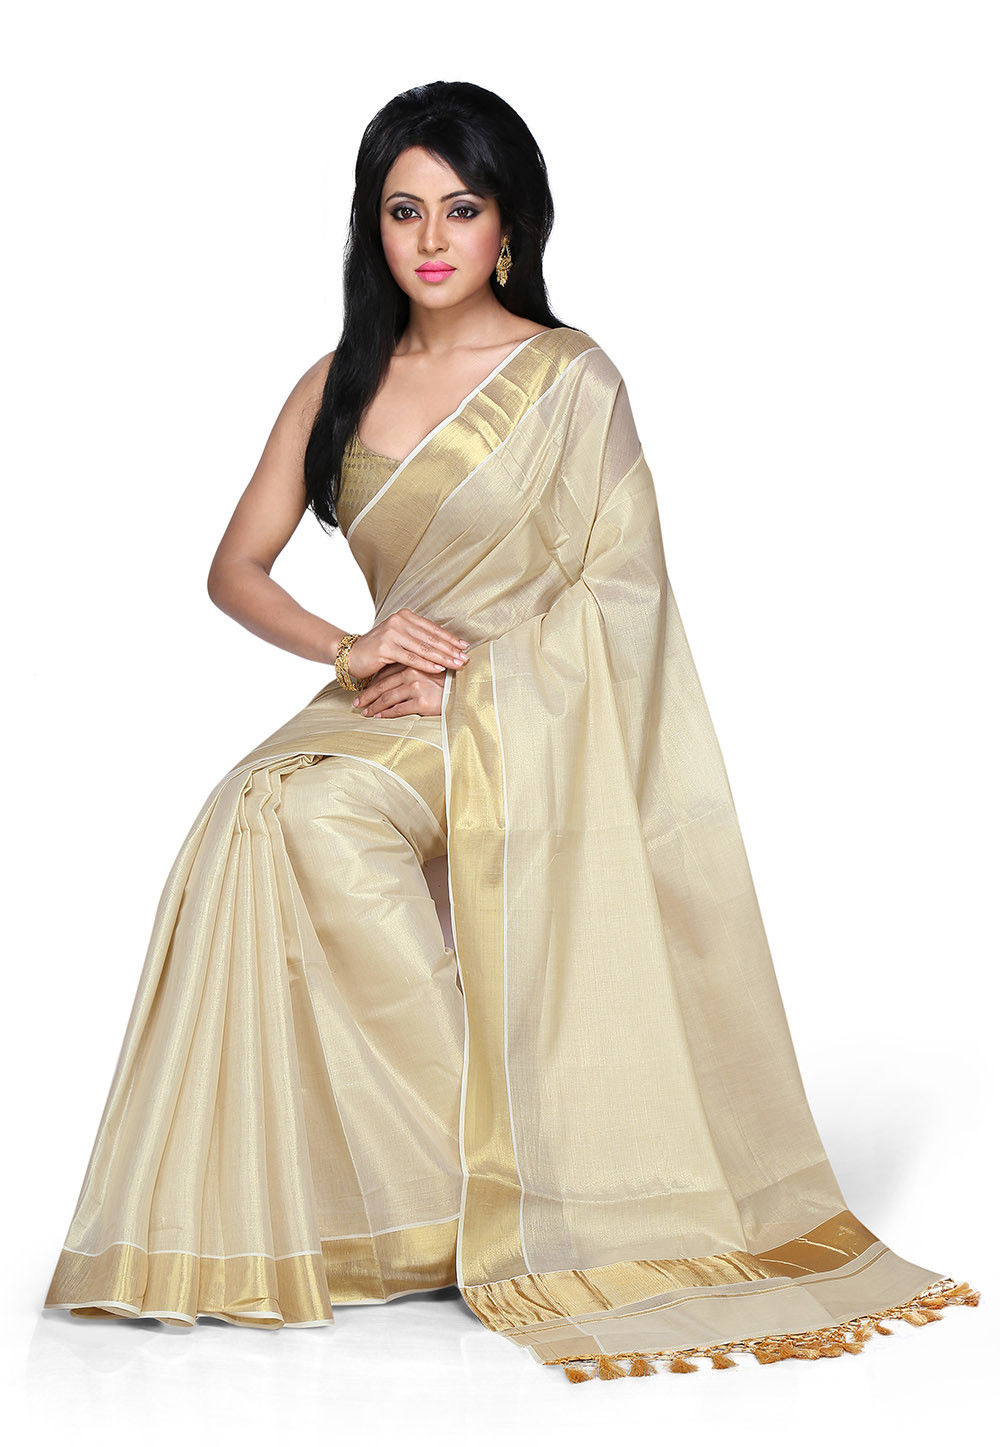 Pure Kerala Kasavu Cotton Saree in Cream